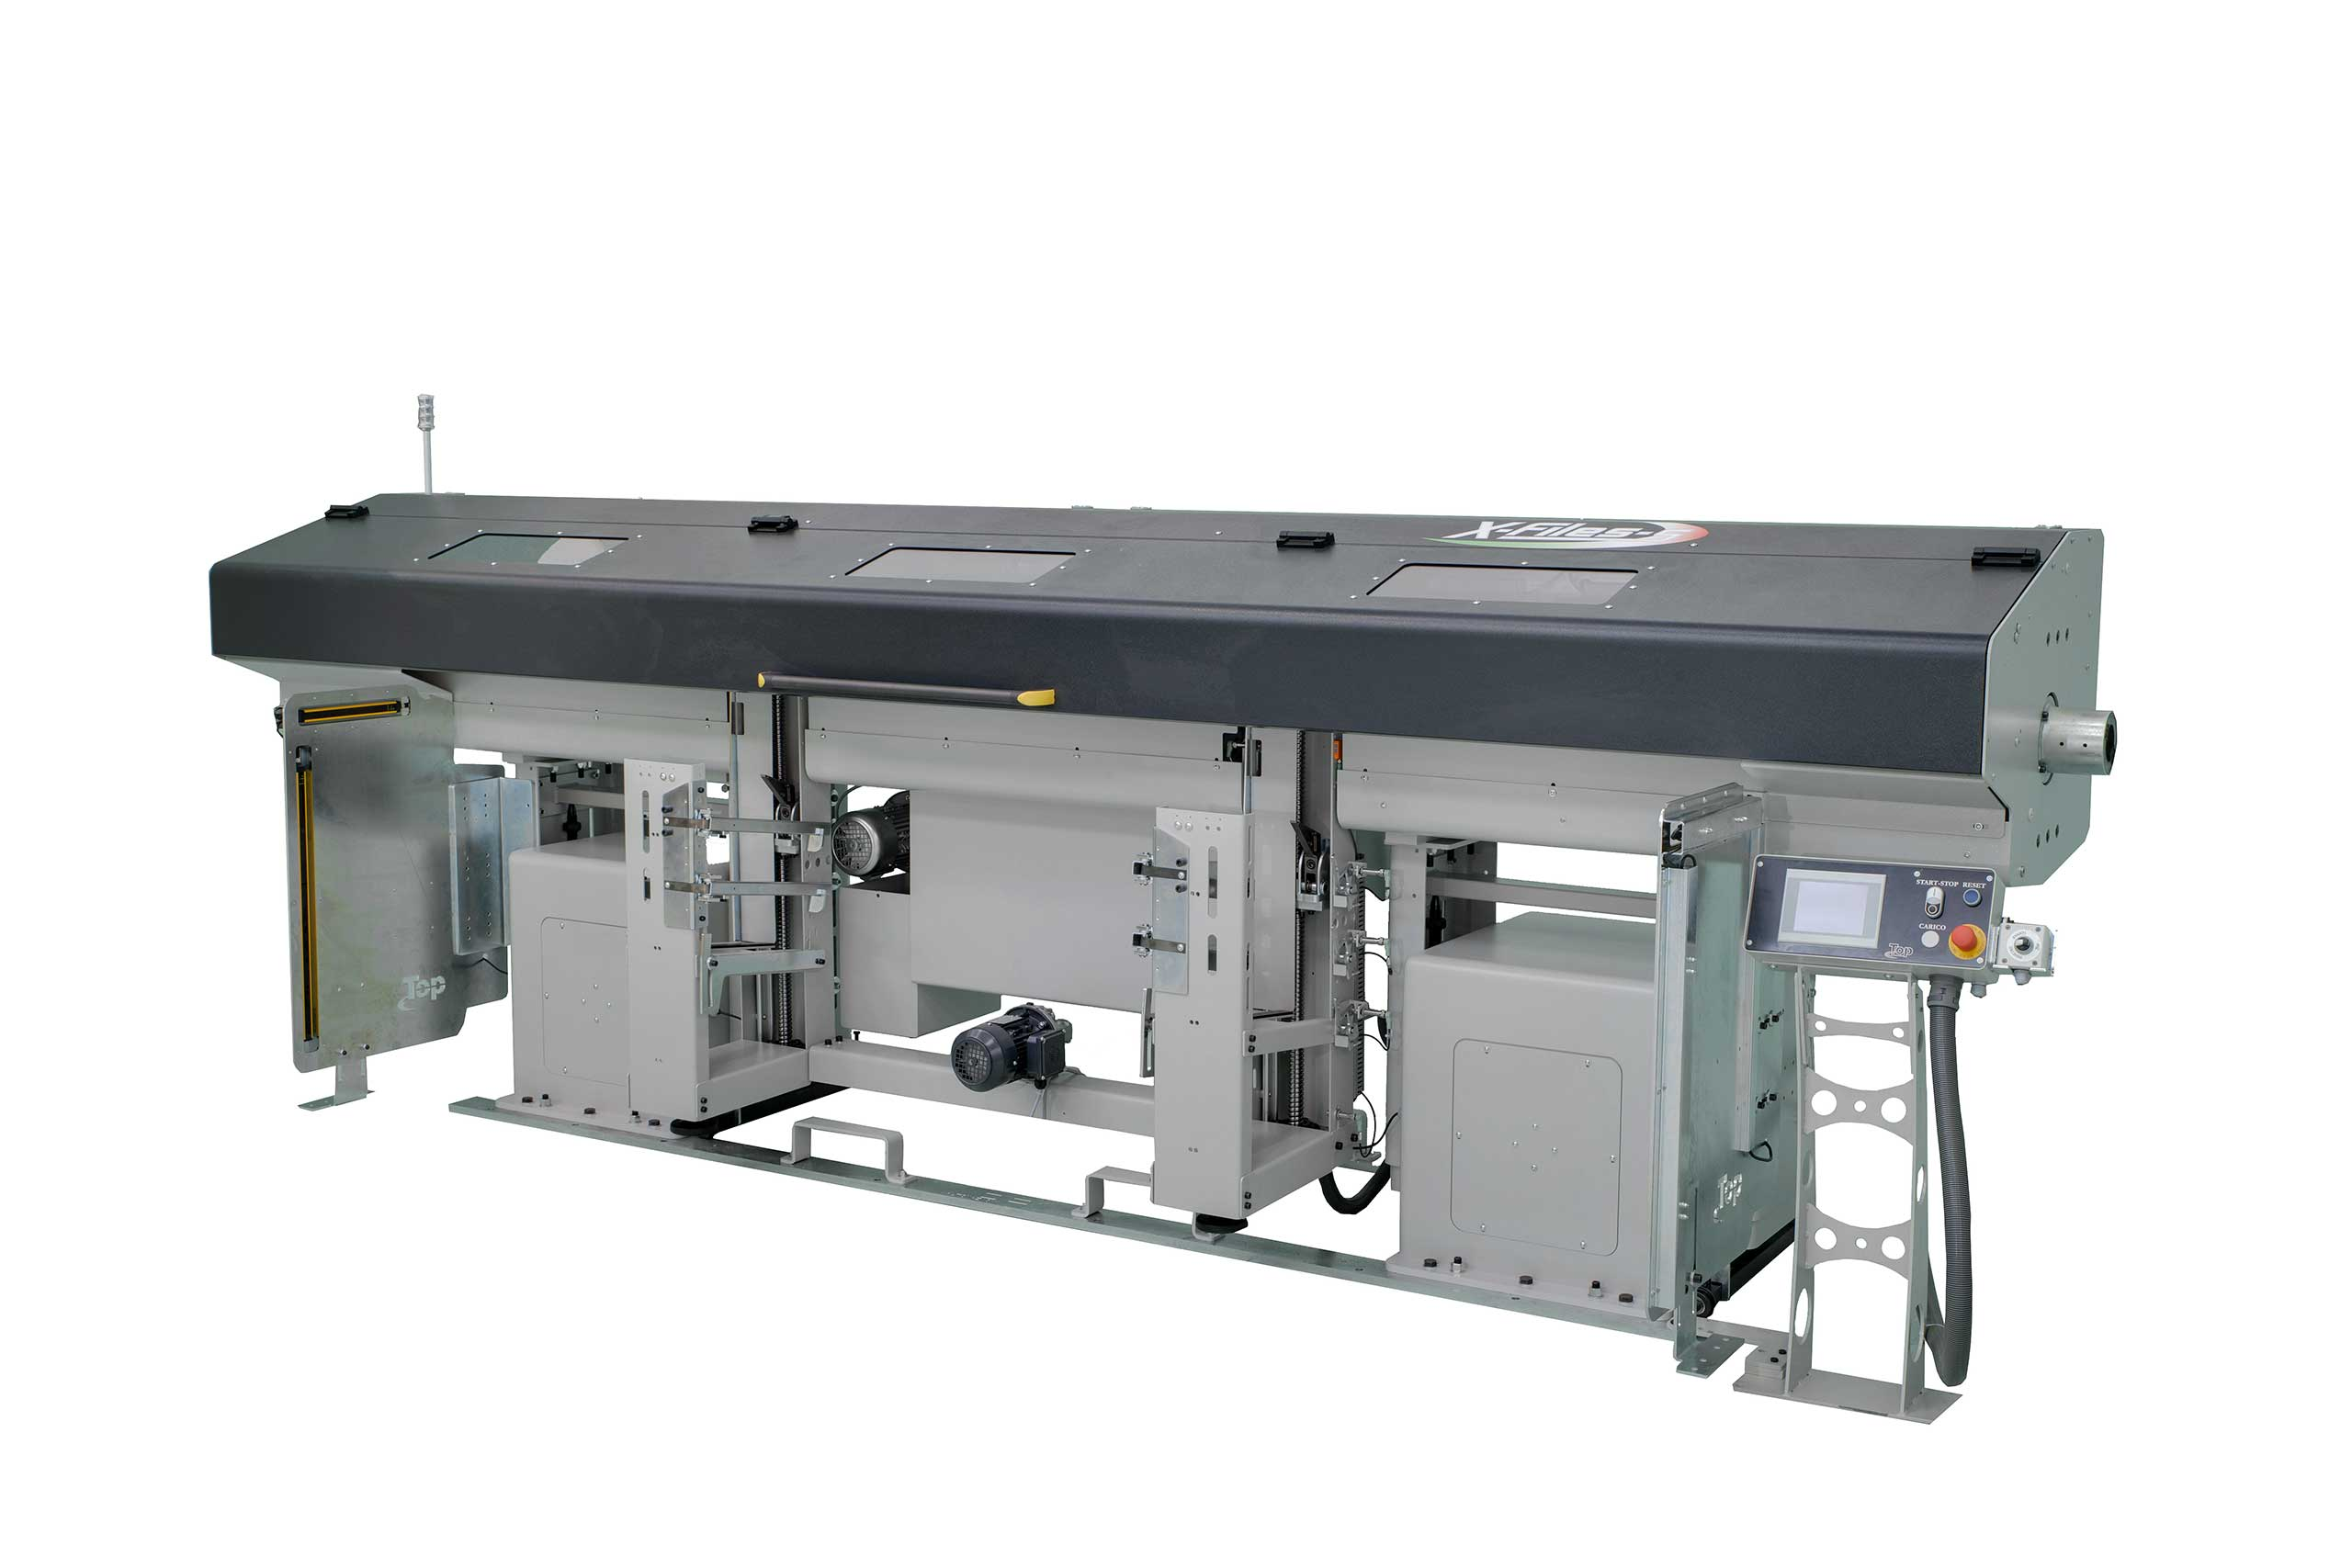 XFILES- S | Automatic loader for fixed head lathes